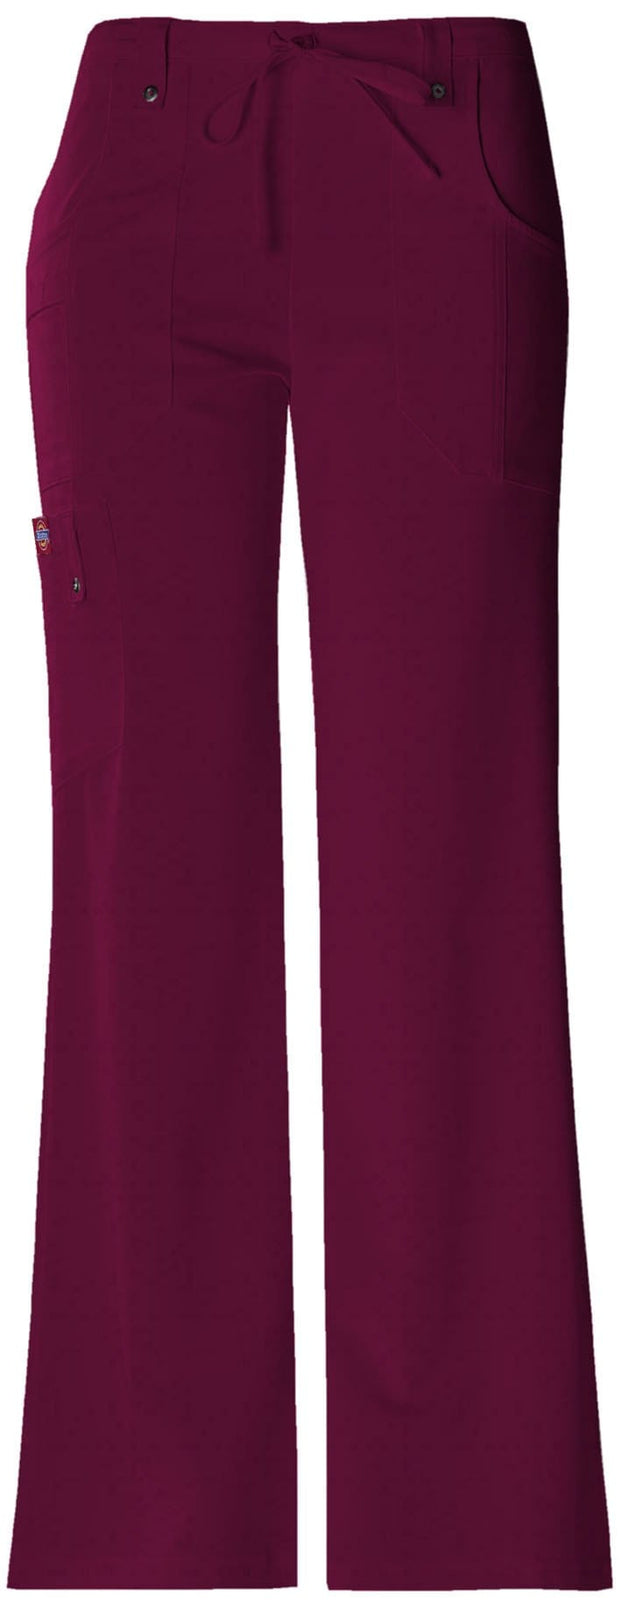 Dickies Xtreme Stretch Women's Mid Rise Drawstring Cargo Pant - 82011 - ScrubHaven